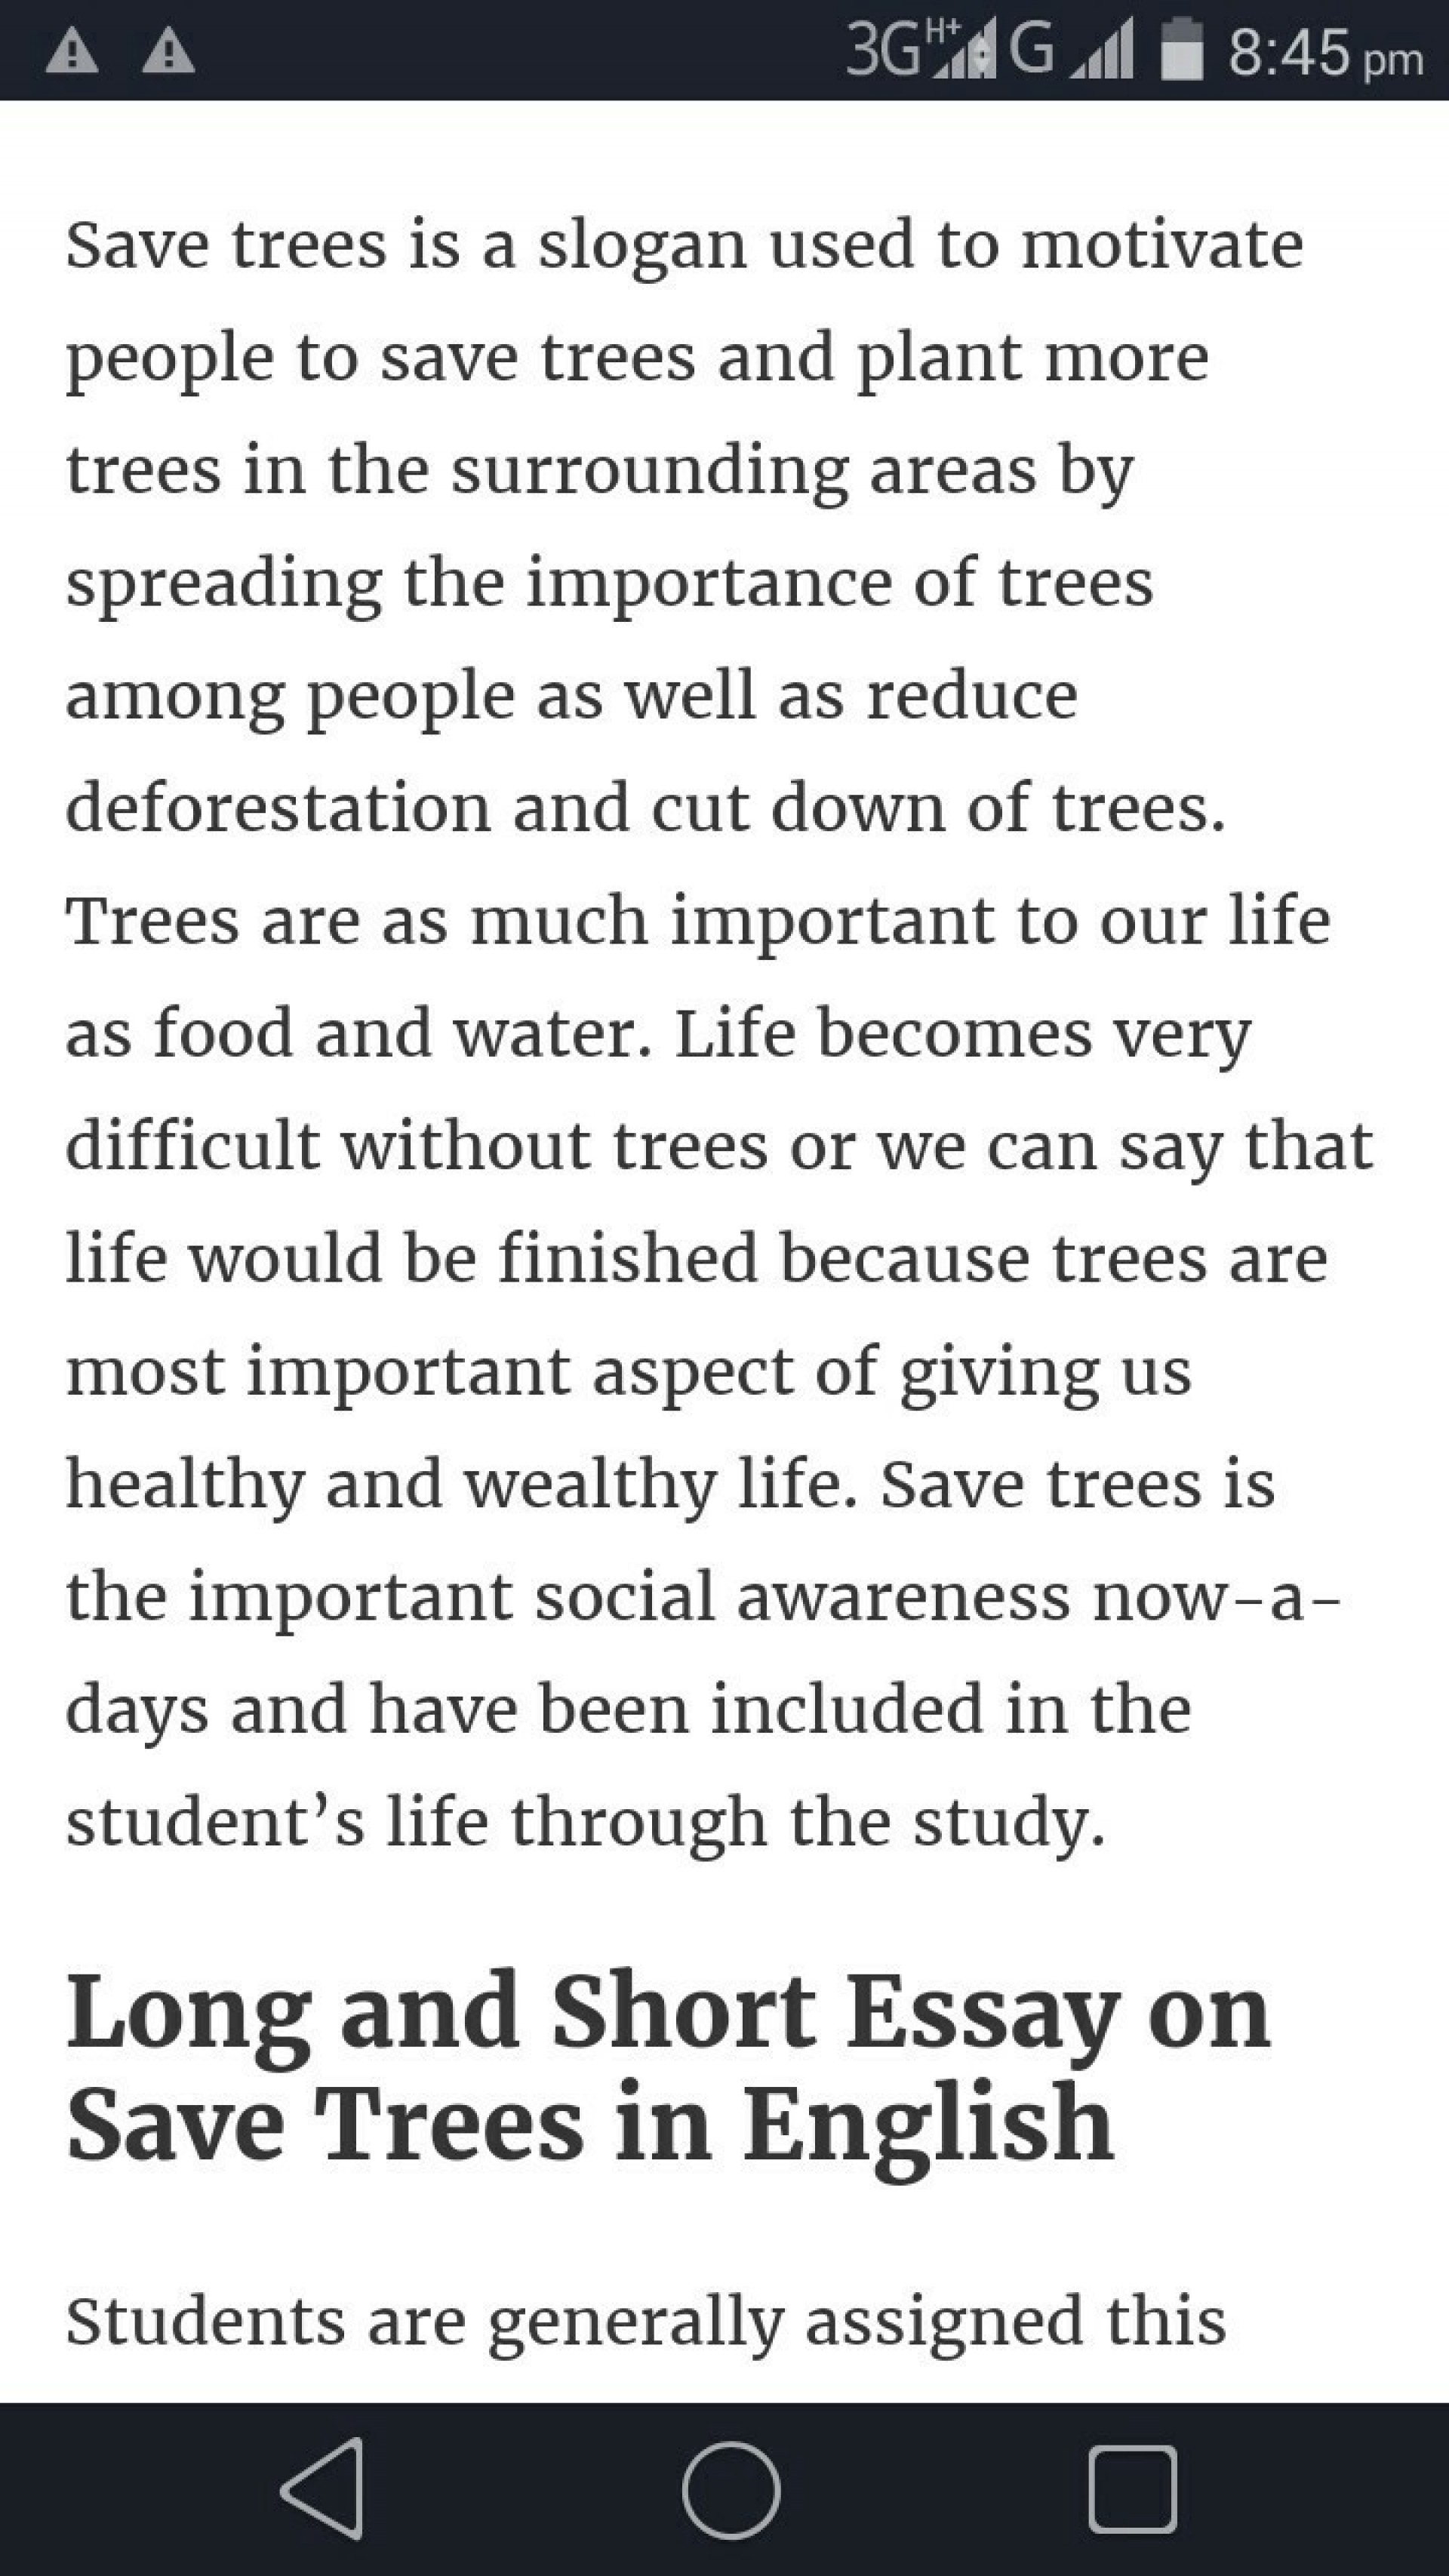 002 How Can We Save Trees Essay Marvelous To In Hindi Telugu 1920